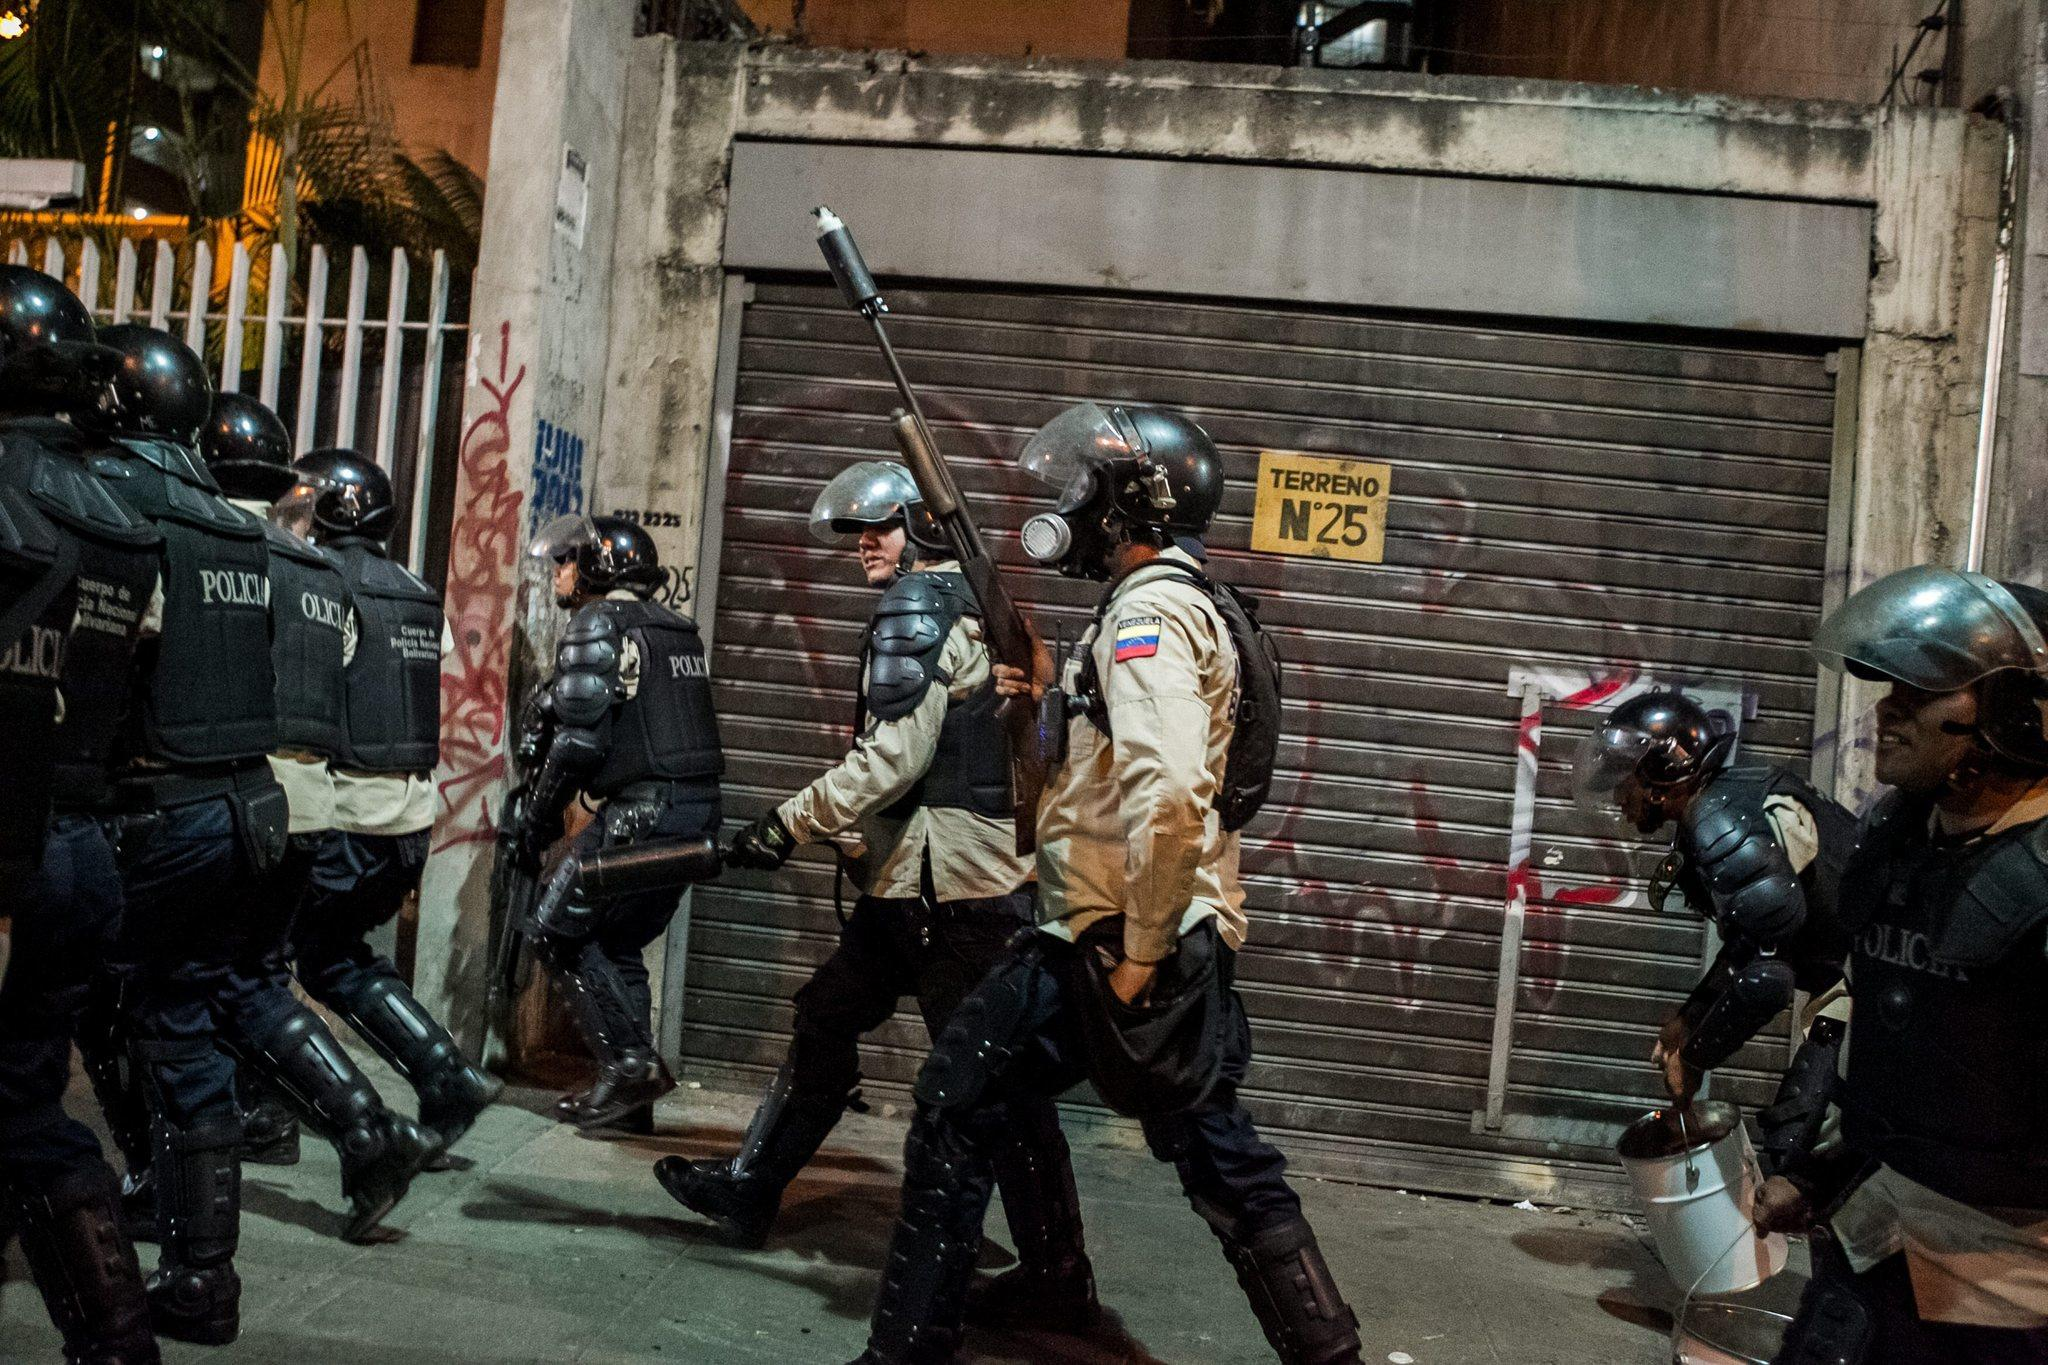 Venezuelan police clash with anti-government demonstrators in Caracas.